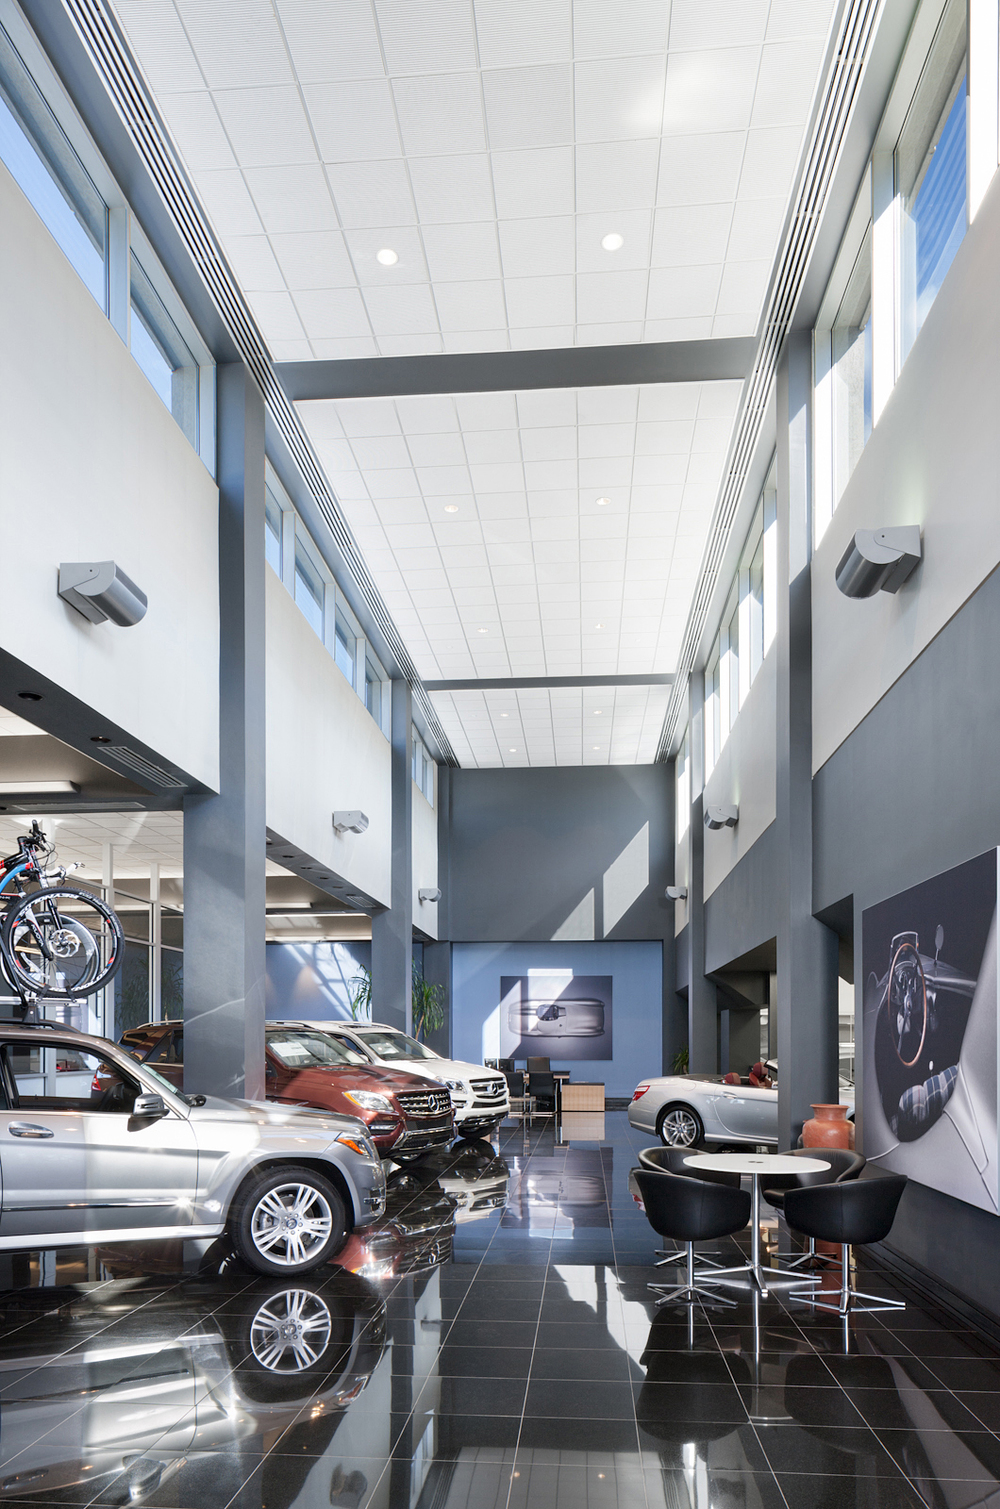 Benzel busch motor car authorized mercedes benz dealer for Mercedes benz englewood service